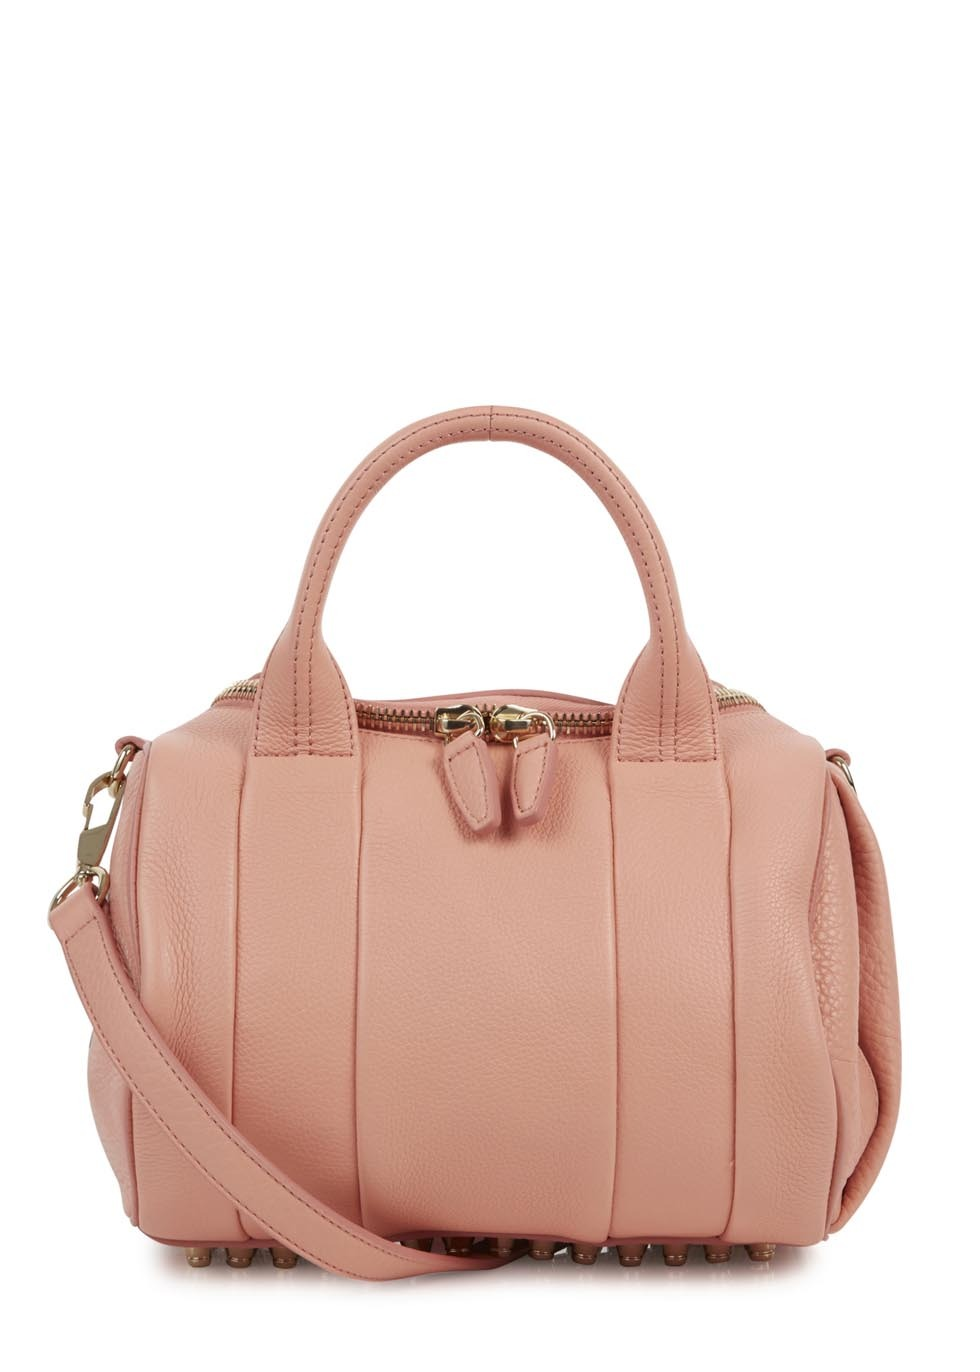 Rockie Coral Studded Leather Dumbo Bag - predominant colour: coral; occasions: casual, work, creative work; style: bowling; length: across body/long; size: standard; material: leather; pattern: plain; finish: plain; trends: sorbet shades; season: s/s 2014